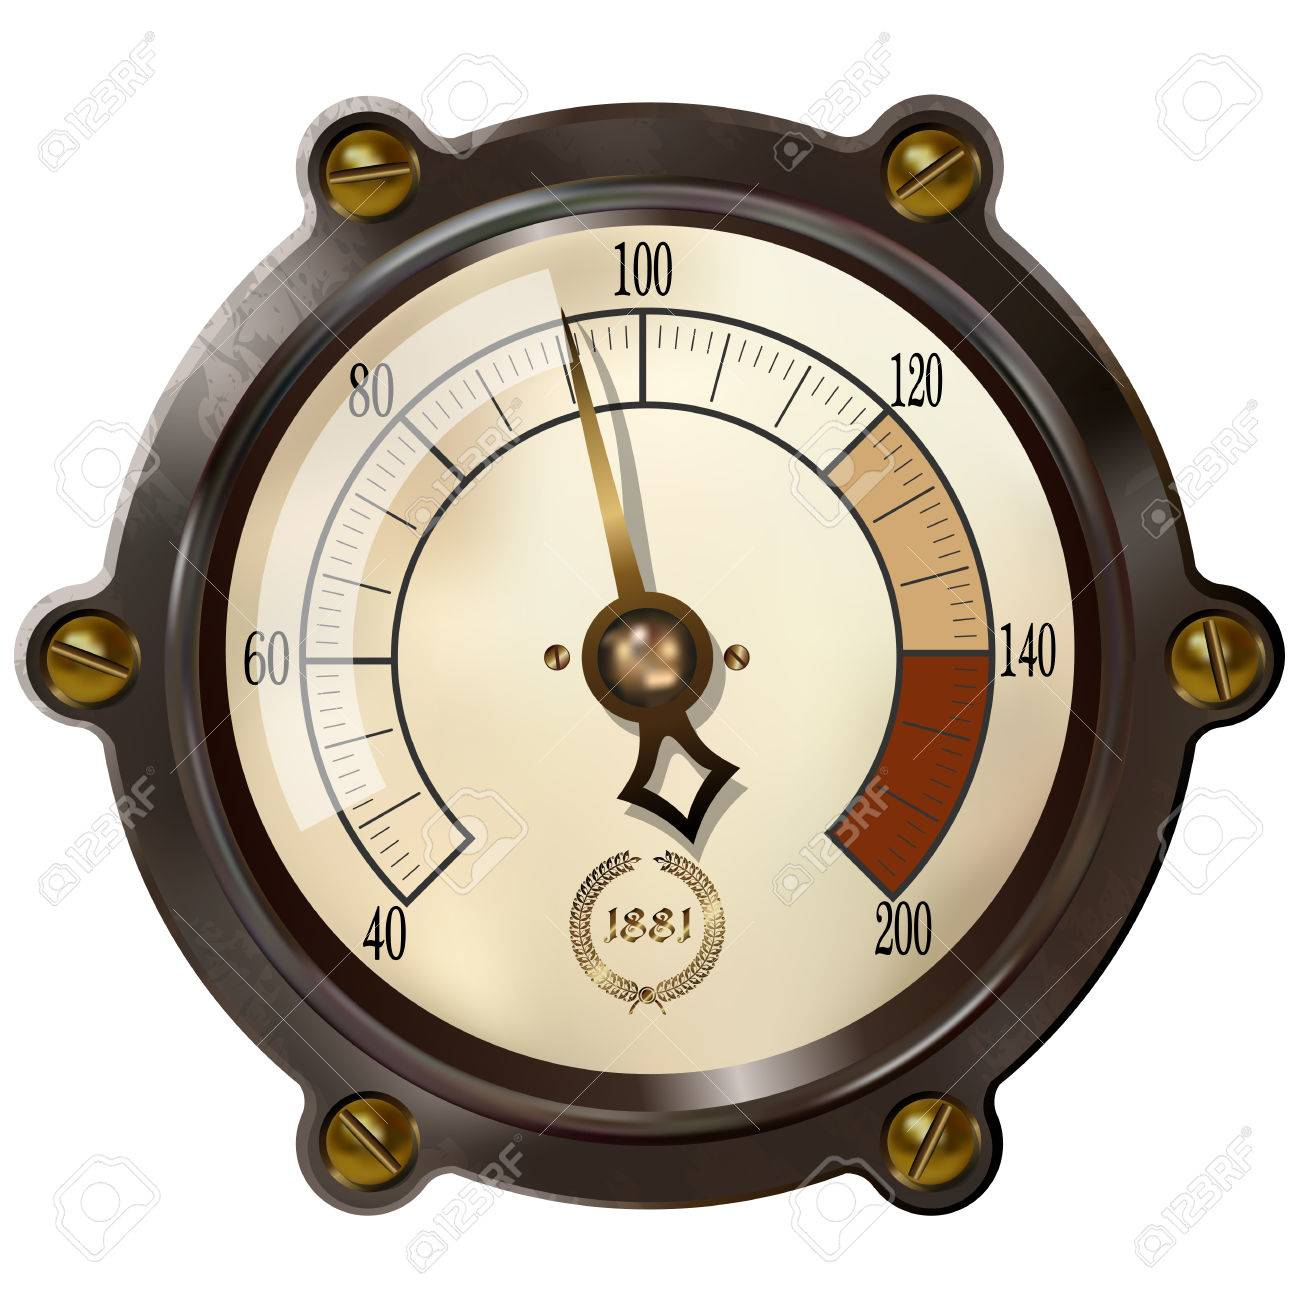 Ancient measuring device in the style of steampunk Stock Vector - 37576818